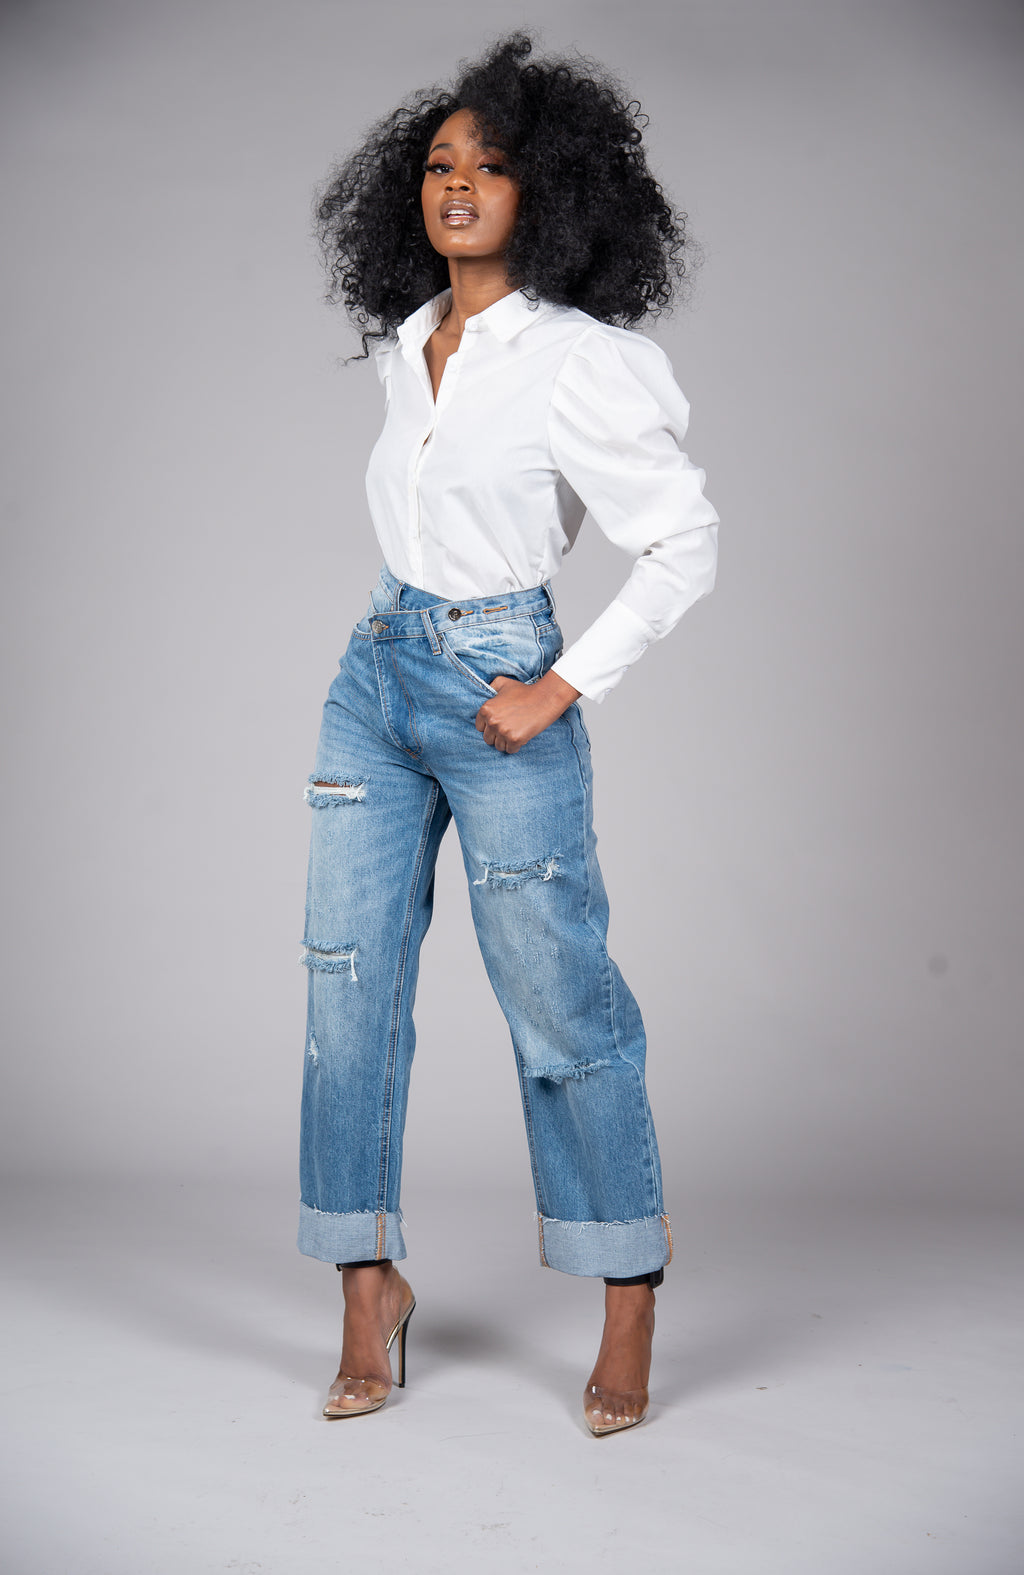 Trench & Wide Leg Pant Set - The Kyra Danaya Collection